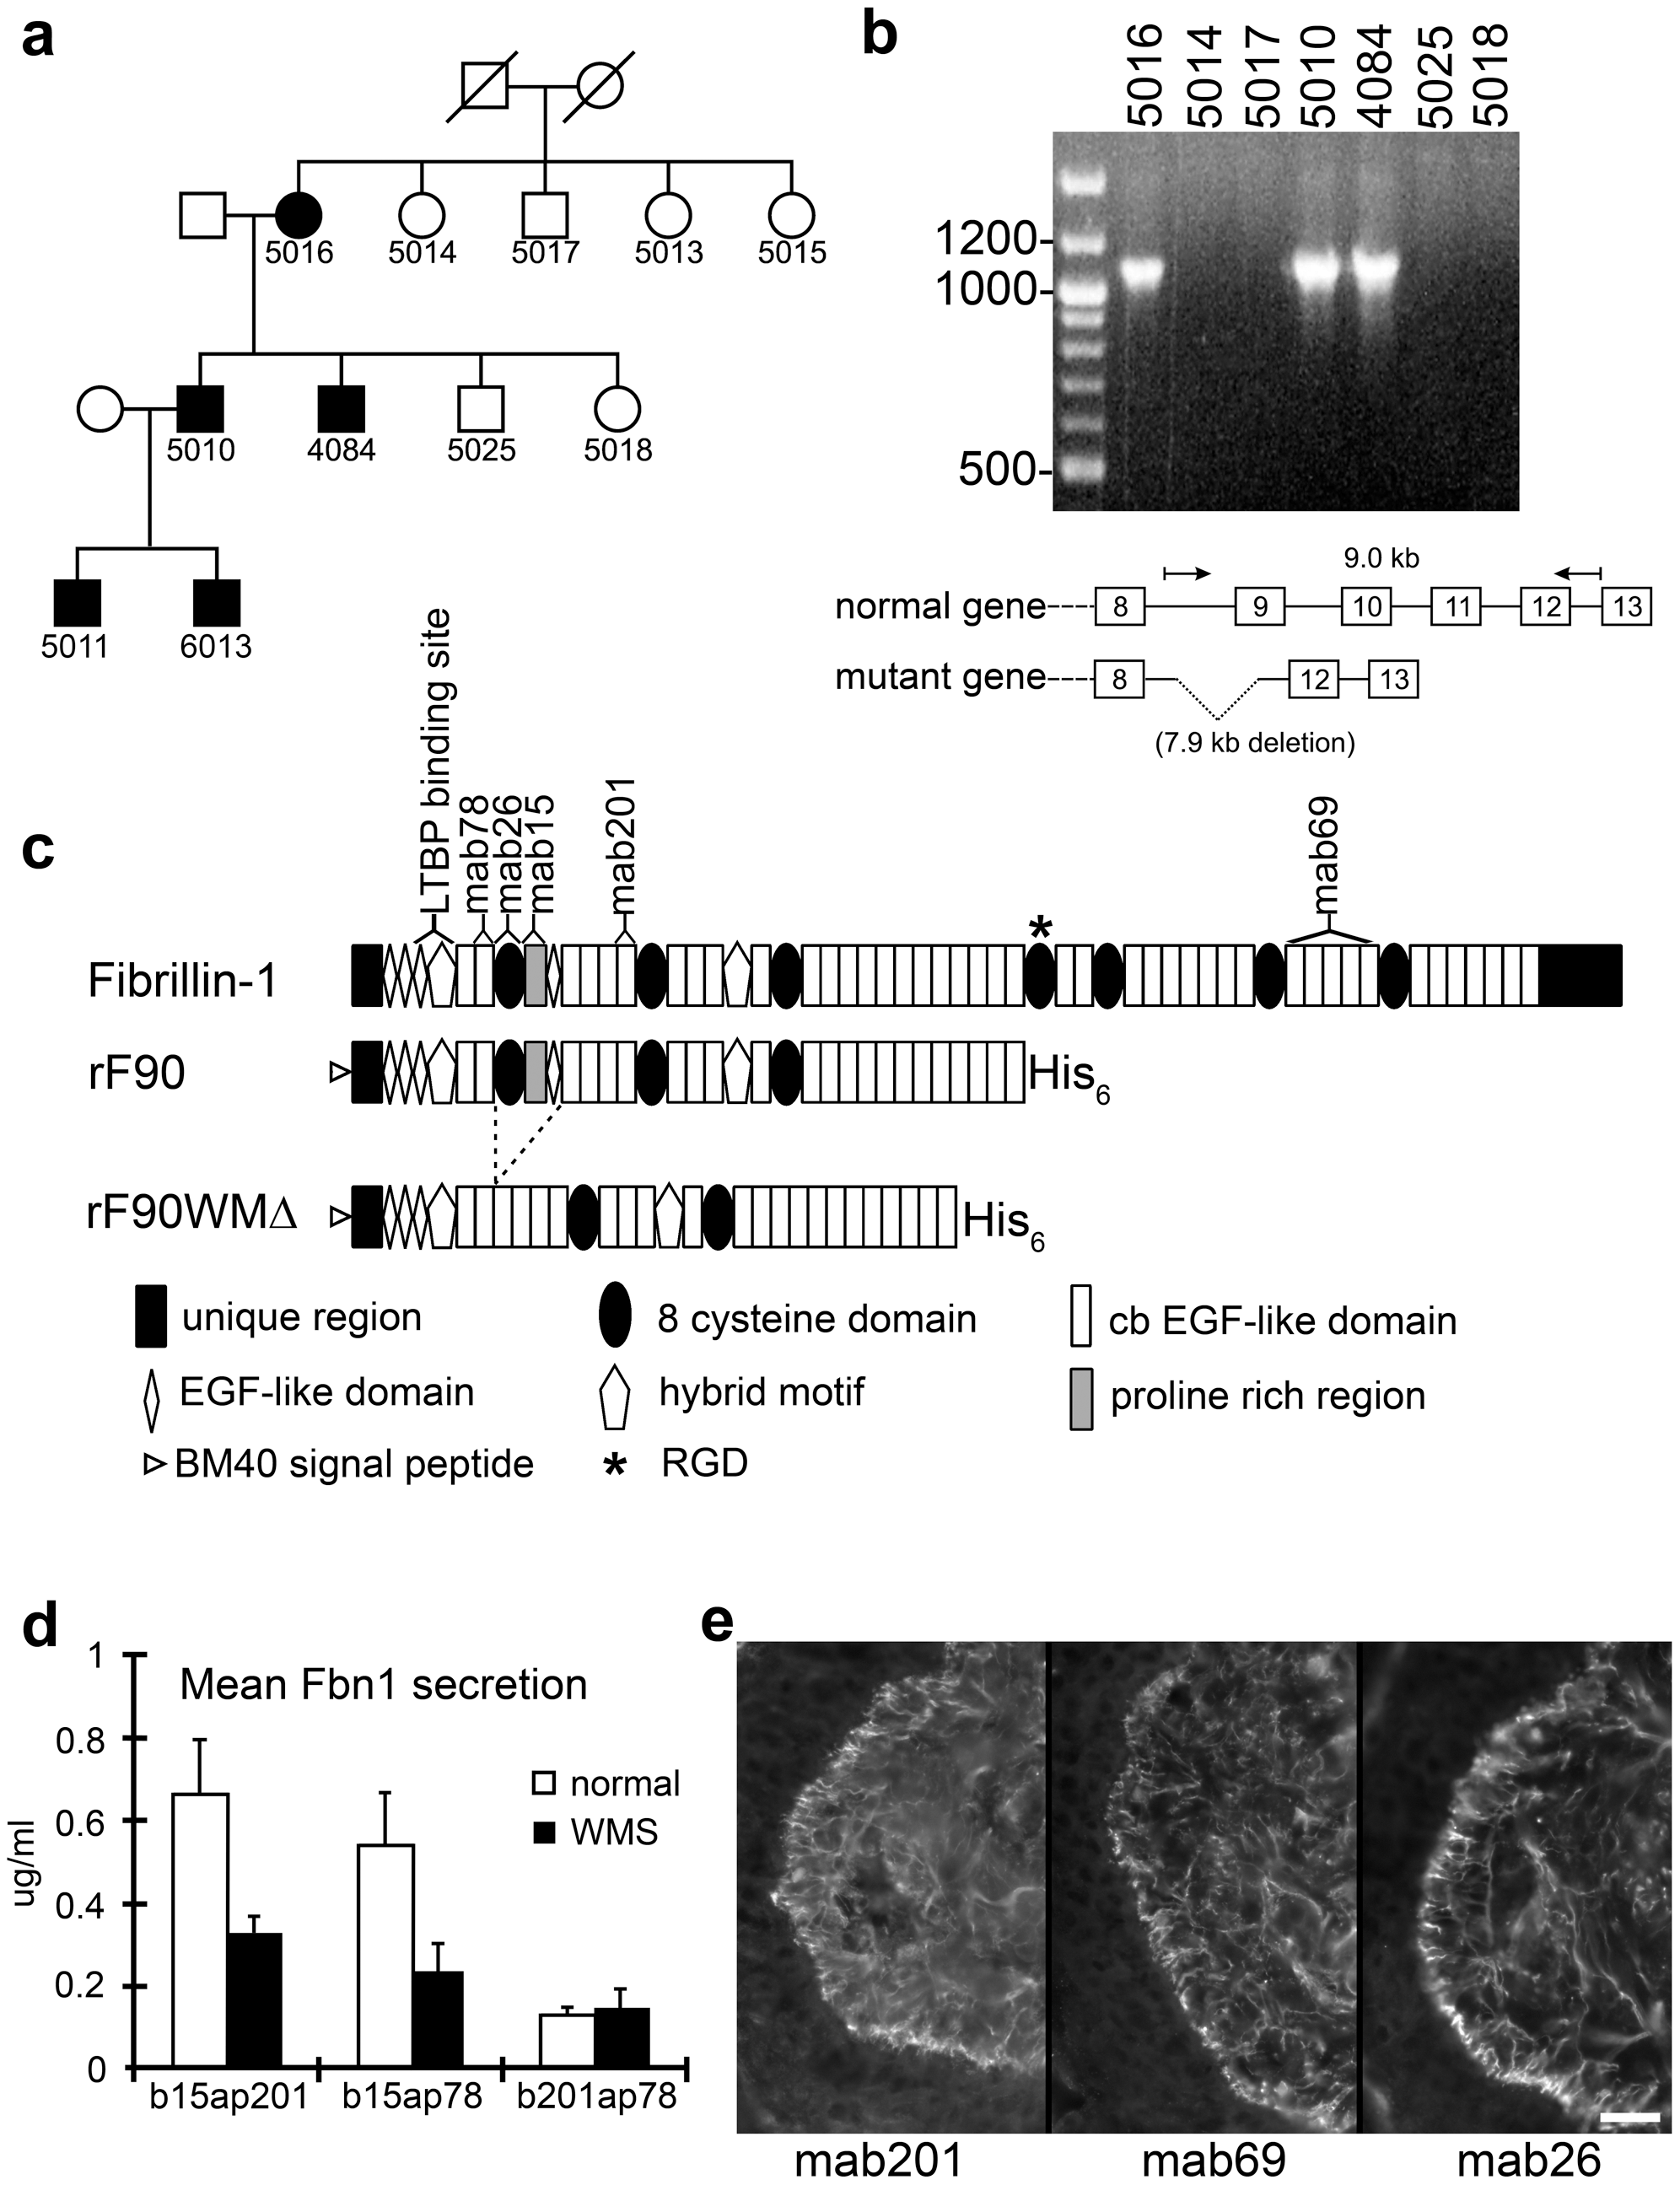 Characterization of a novel genomic deletion in <i>FBN1</i> in a family with WMS.